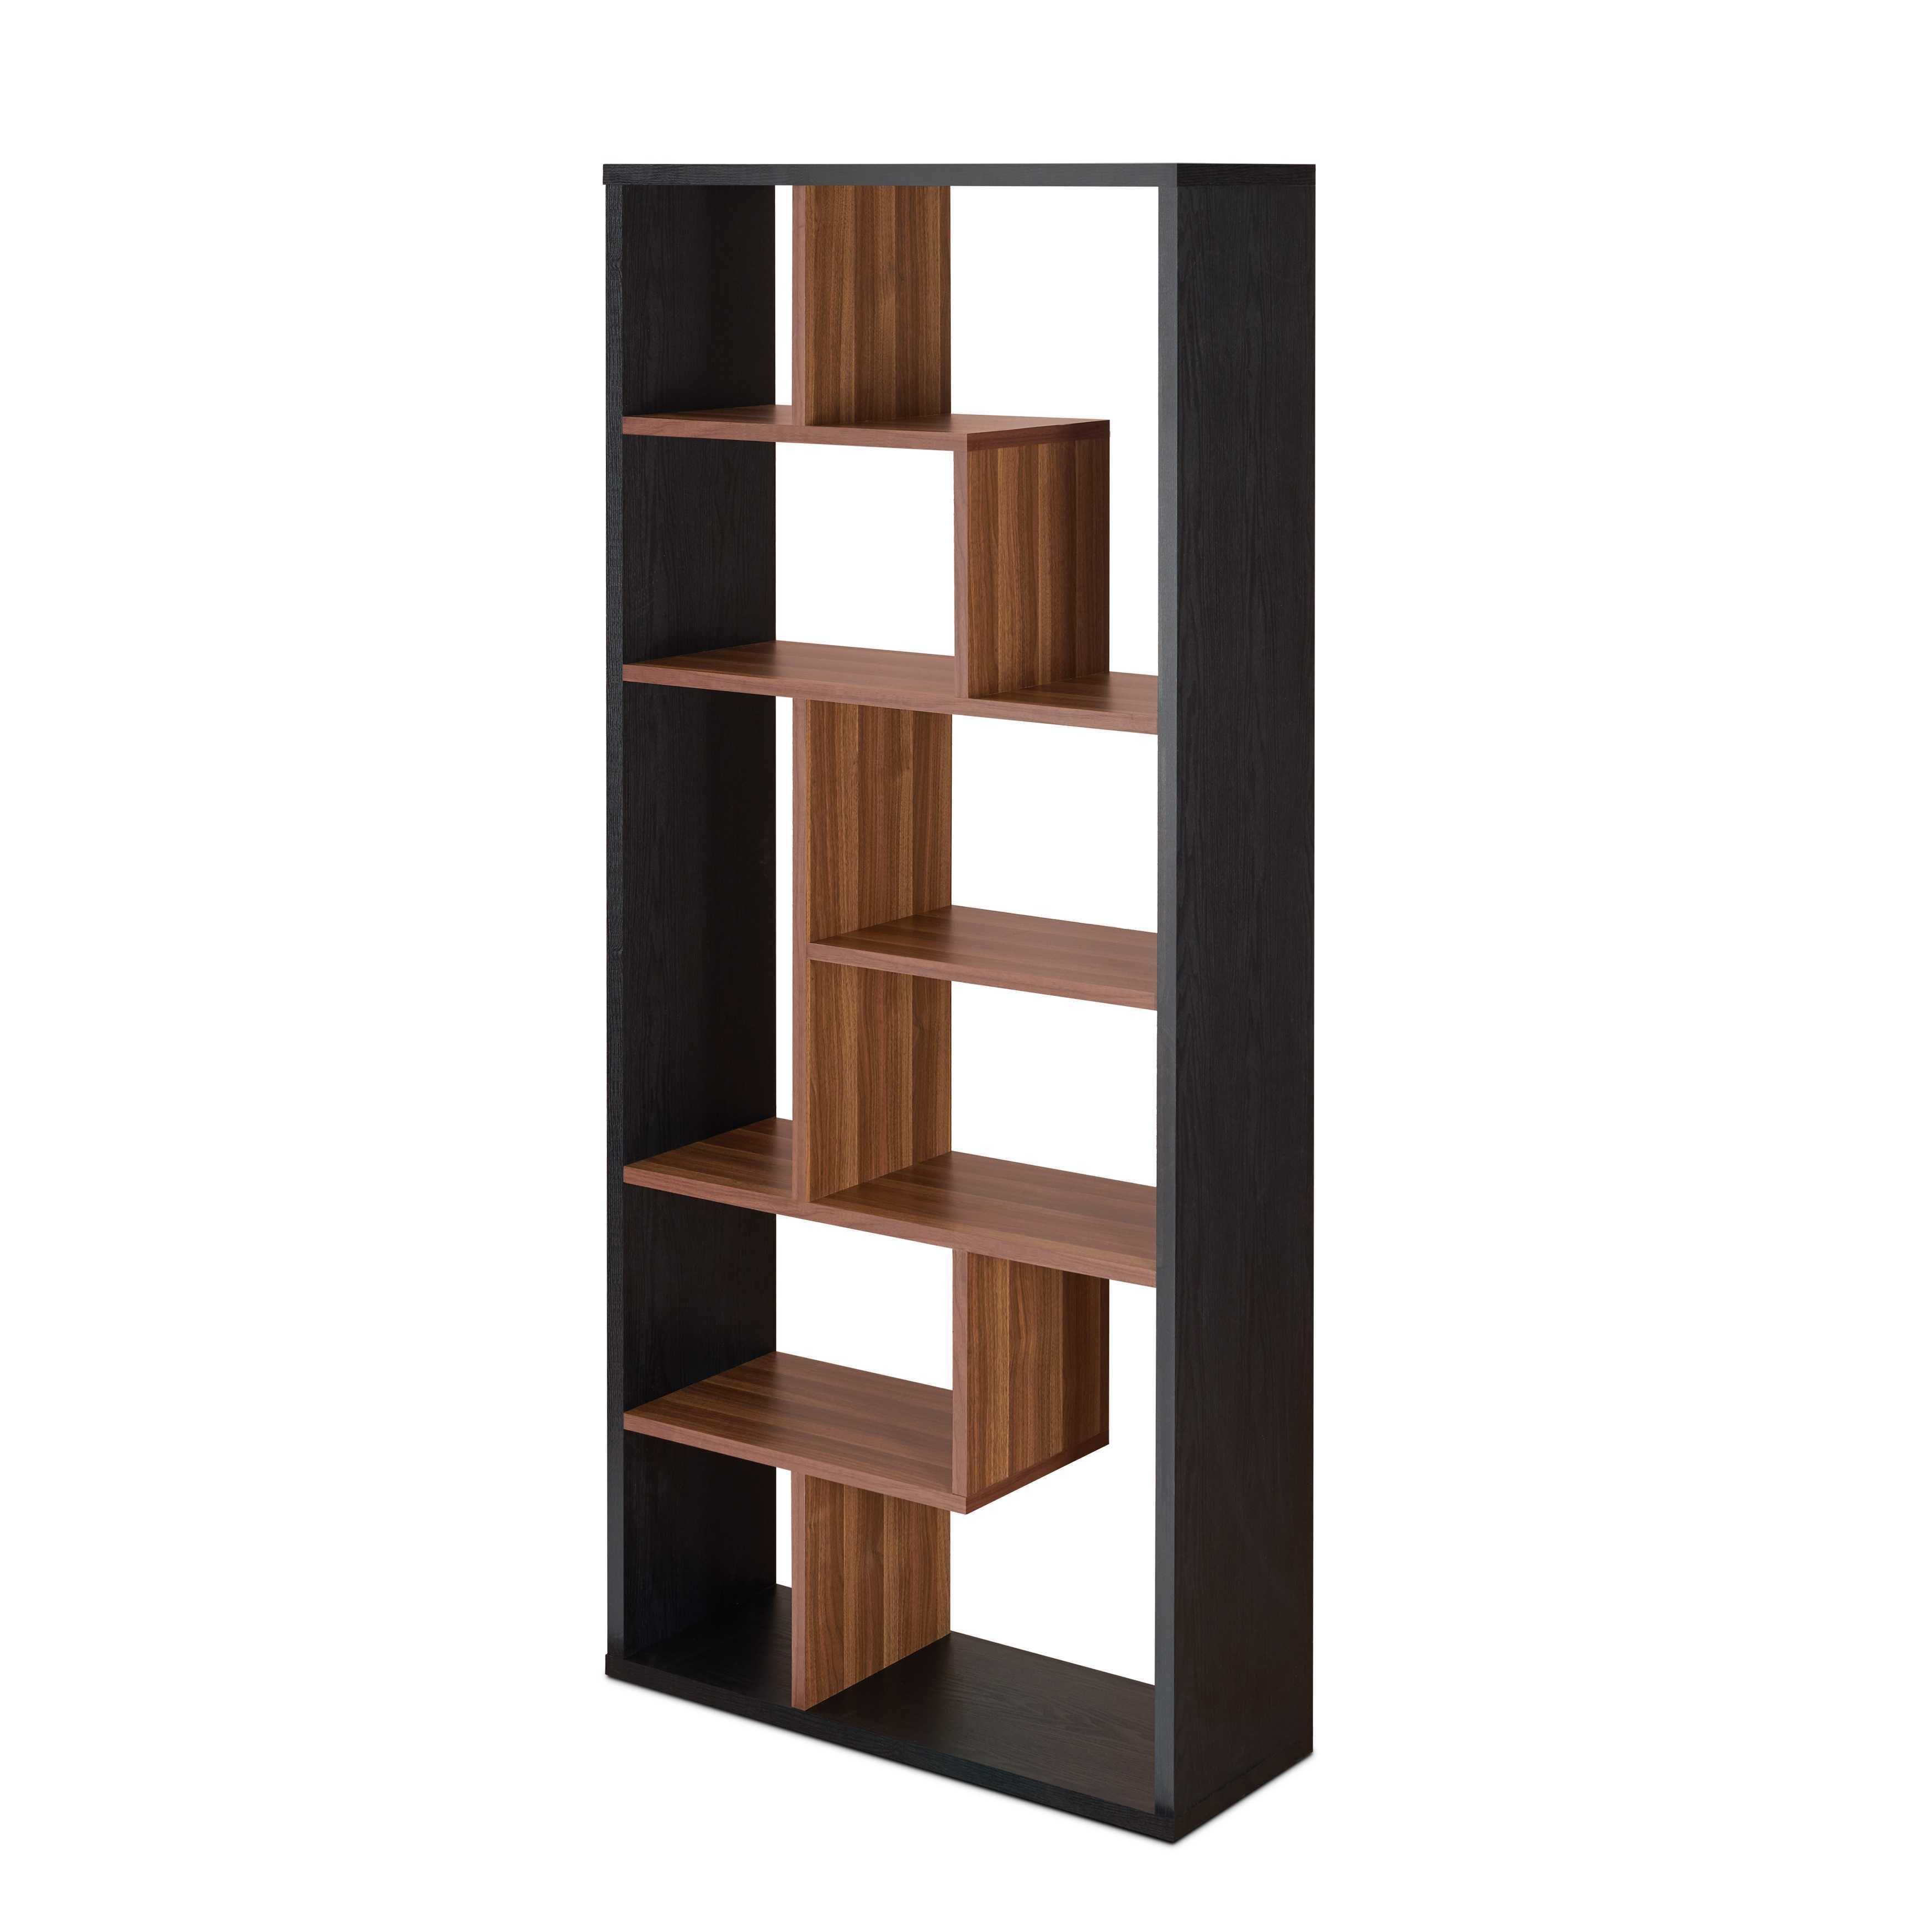 Cube Bookcase in Black and Walnut - Veneer, Particle Board Black and Walnut